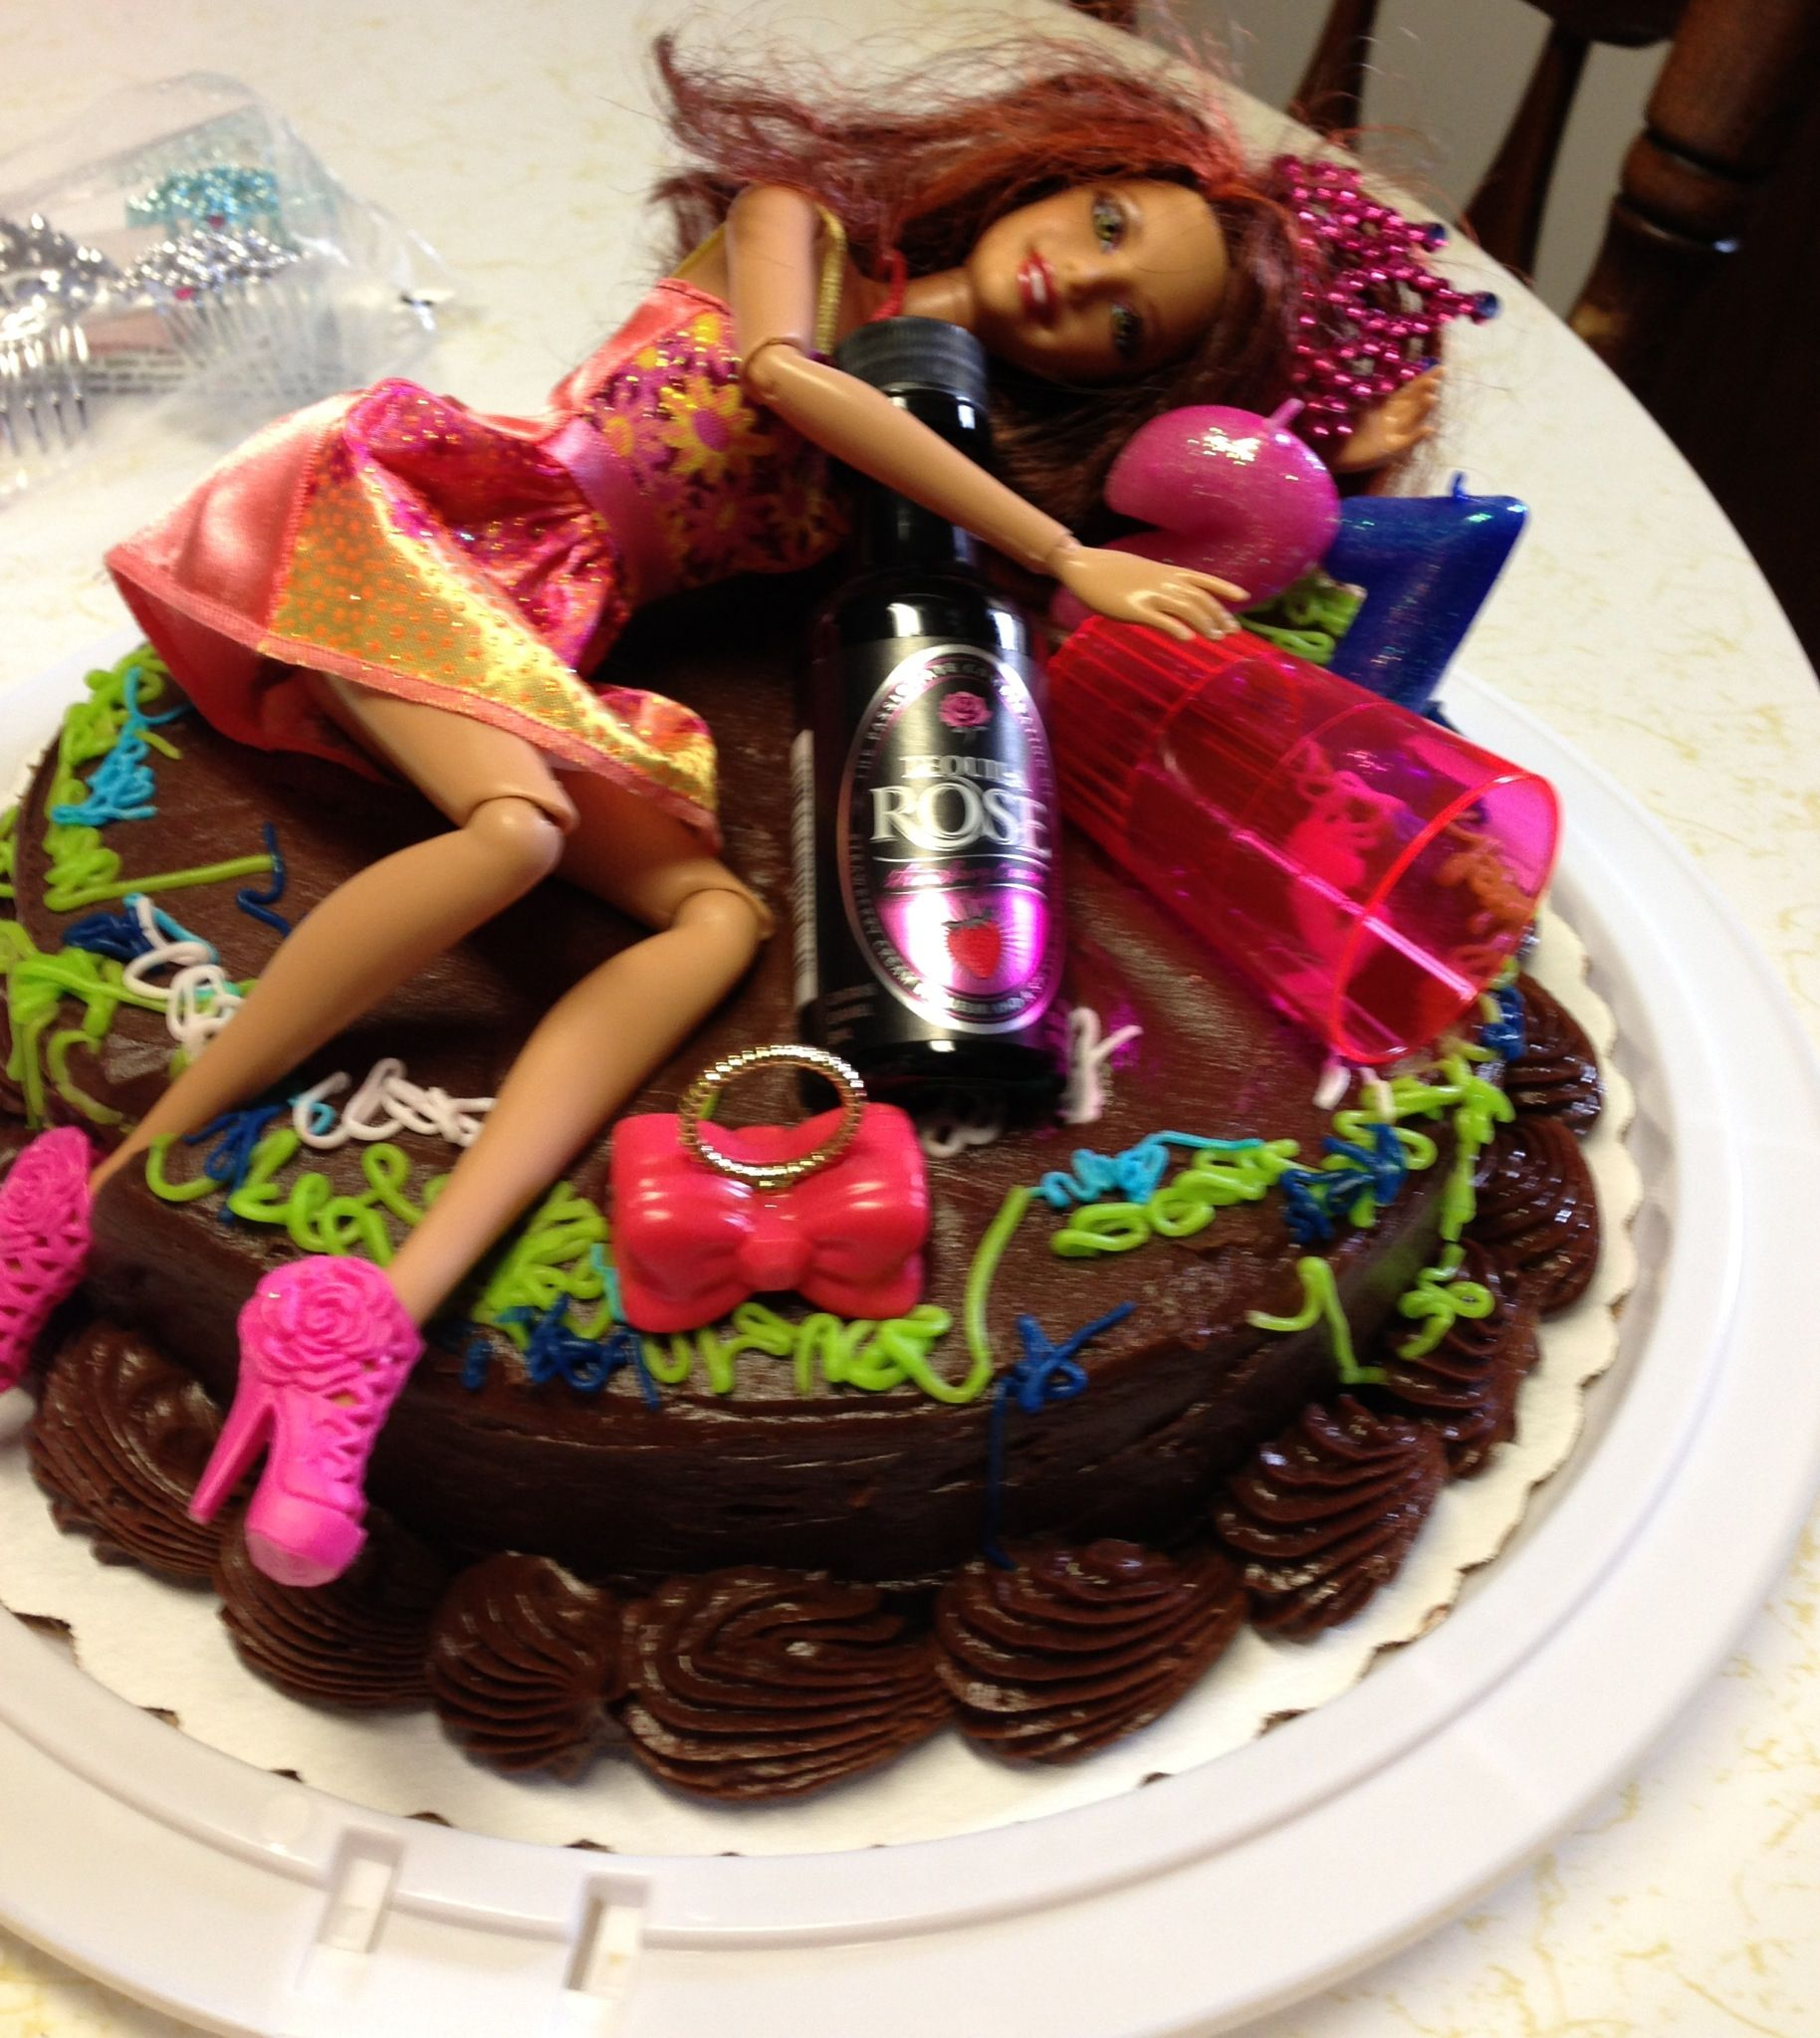 21st Birthday Cakewhite Girl Wasted Humor Pinterest 21st